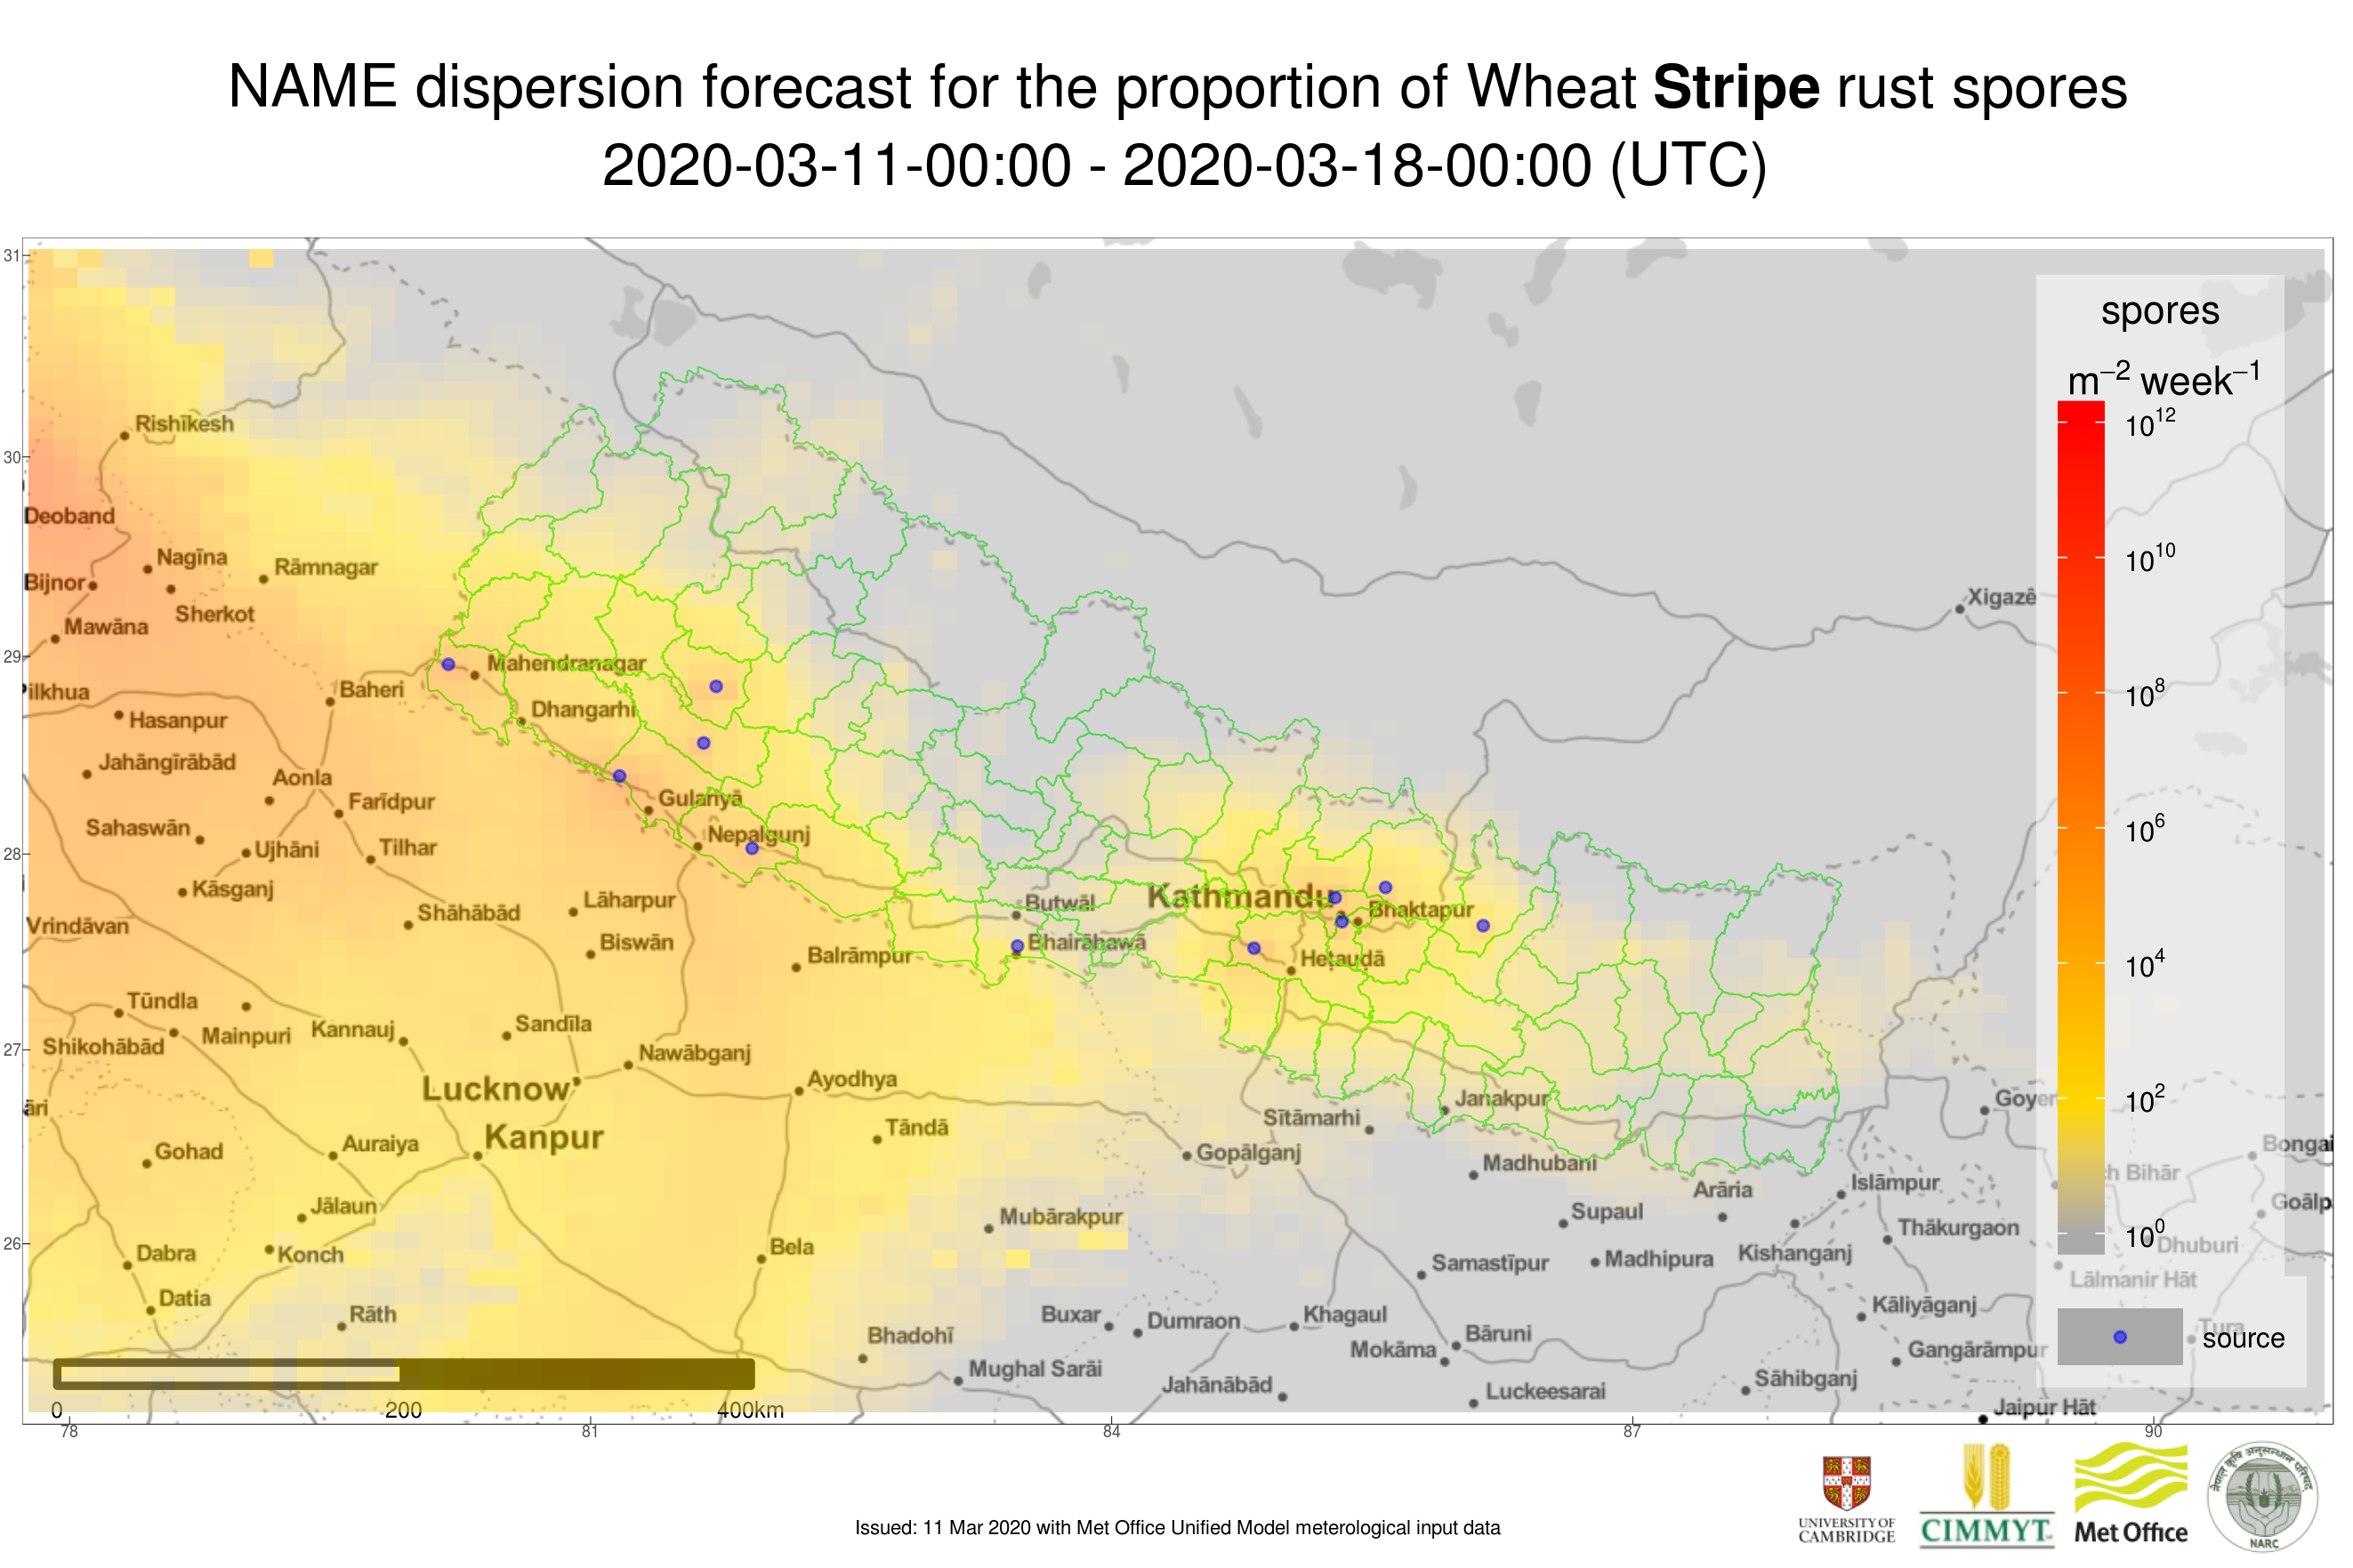 Example of weekly stripe rust spore deposition forecast in Nepal. Darker colors represent higher predicted number of spores deposited. The early warning system combines weather information from the Met Office with field and mobile phone surveillance data and disease spread modeling from the University of Cambridge. (Graphic: University of Cambridge and Met Office)